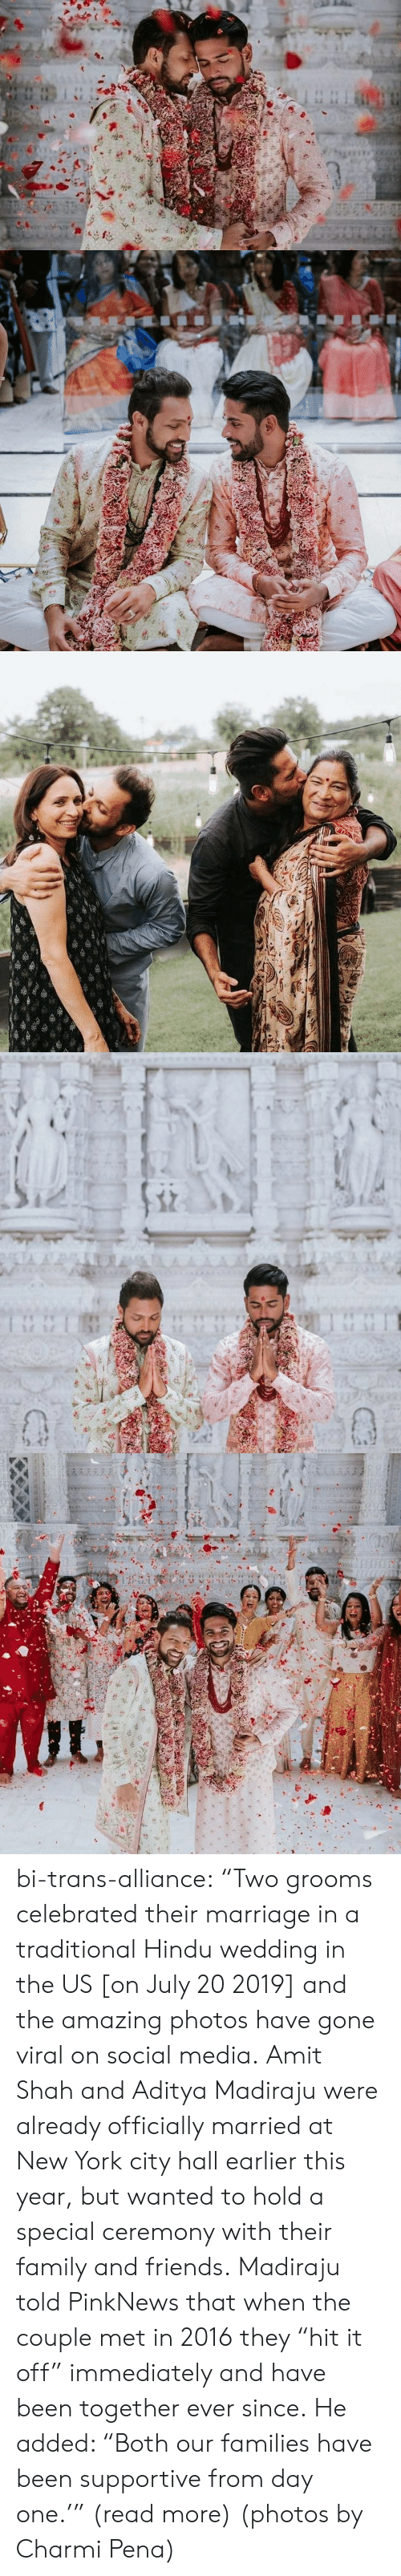 "family and friends: TA A  AAAA  1 1 bi-trans-alliance:   ""Two grooms celebrated their marriage in a traditional Hindu wedding in the US [on July 20 2019] and the amazing photos have gone viral on social media.   Amit Shah and Aditya Madiraju were already officially married at New York city hall earlier this year, but wanted to hold a special ceremony with their family and friends. Madiraju told PinkNews that when the couple met in 2016 they ""hit it off"" immediately and have been together ever since. He added: ""Both our families have been supportive from day one.'"" (read more) (photos by Charmi Pena)"